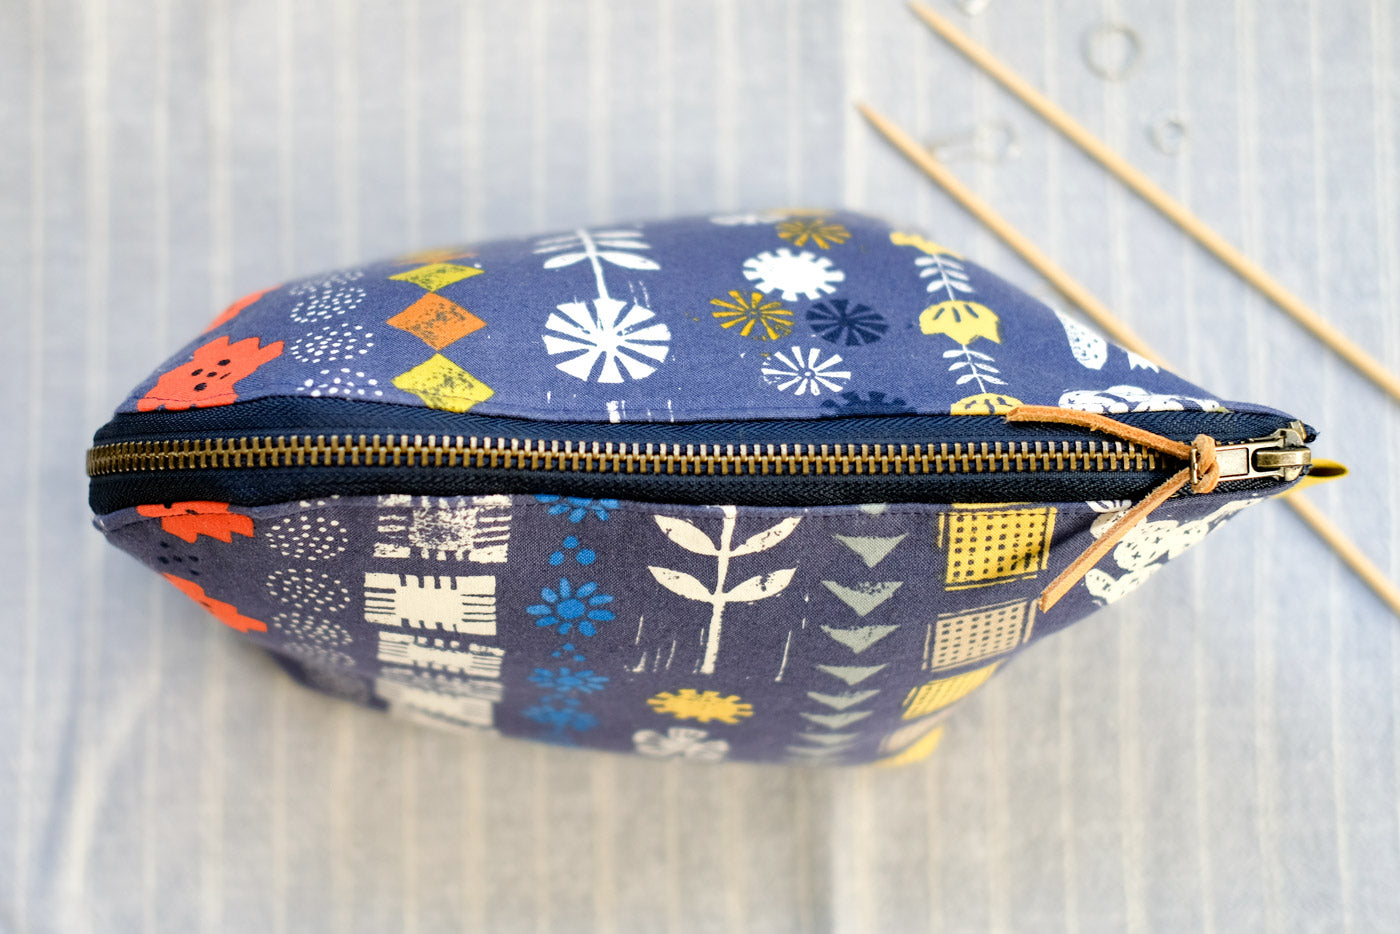 Closed, top-view of the Open Out Box Pouch by Aneela Hoey